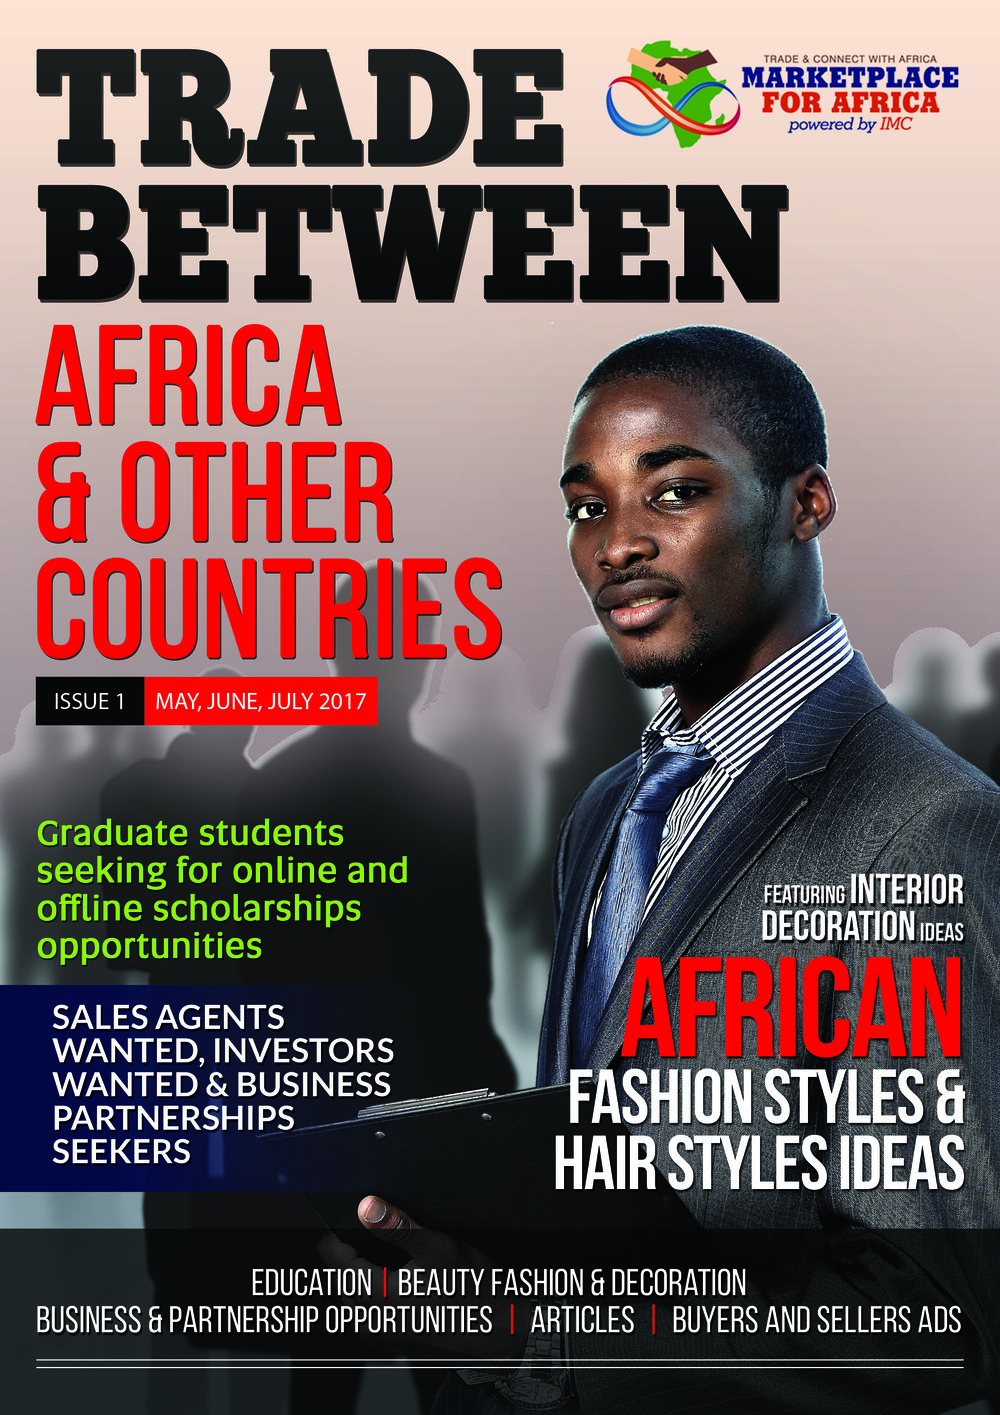 Trade Between Africa and Other Countries Magazine Issue 1, May, June and July 2017